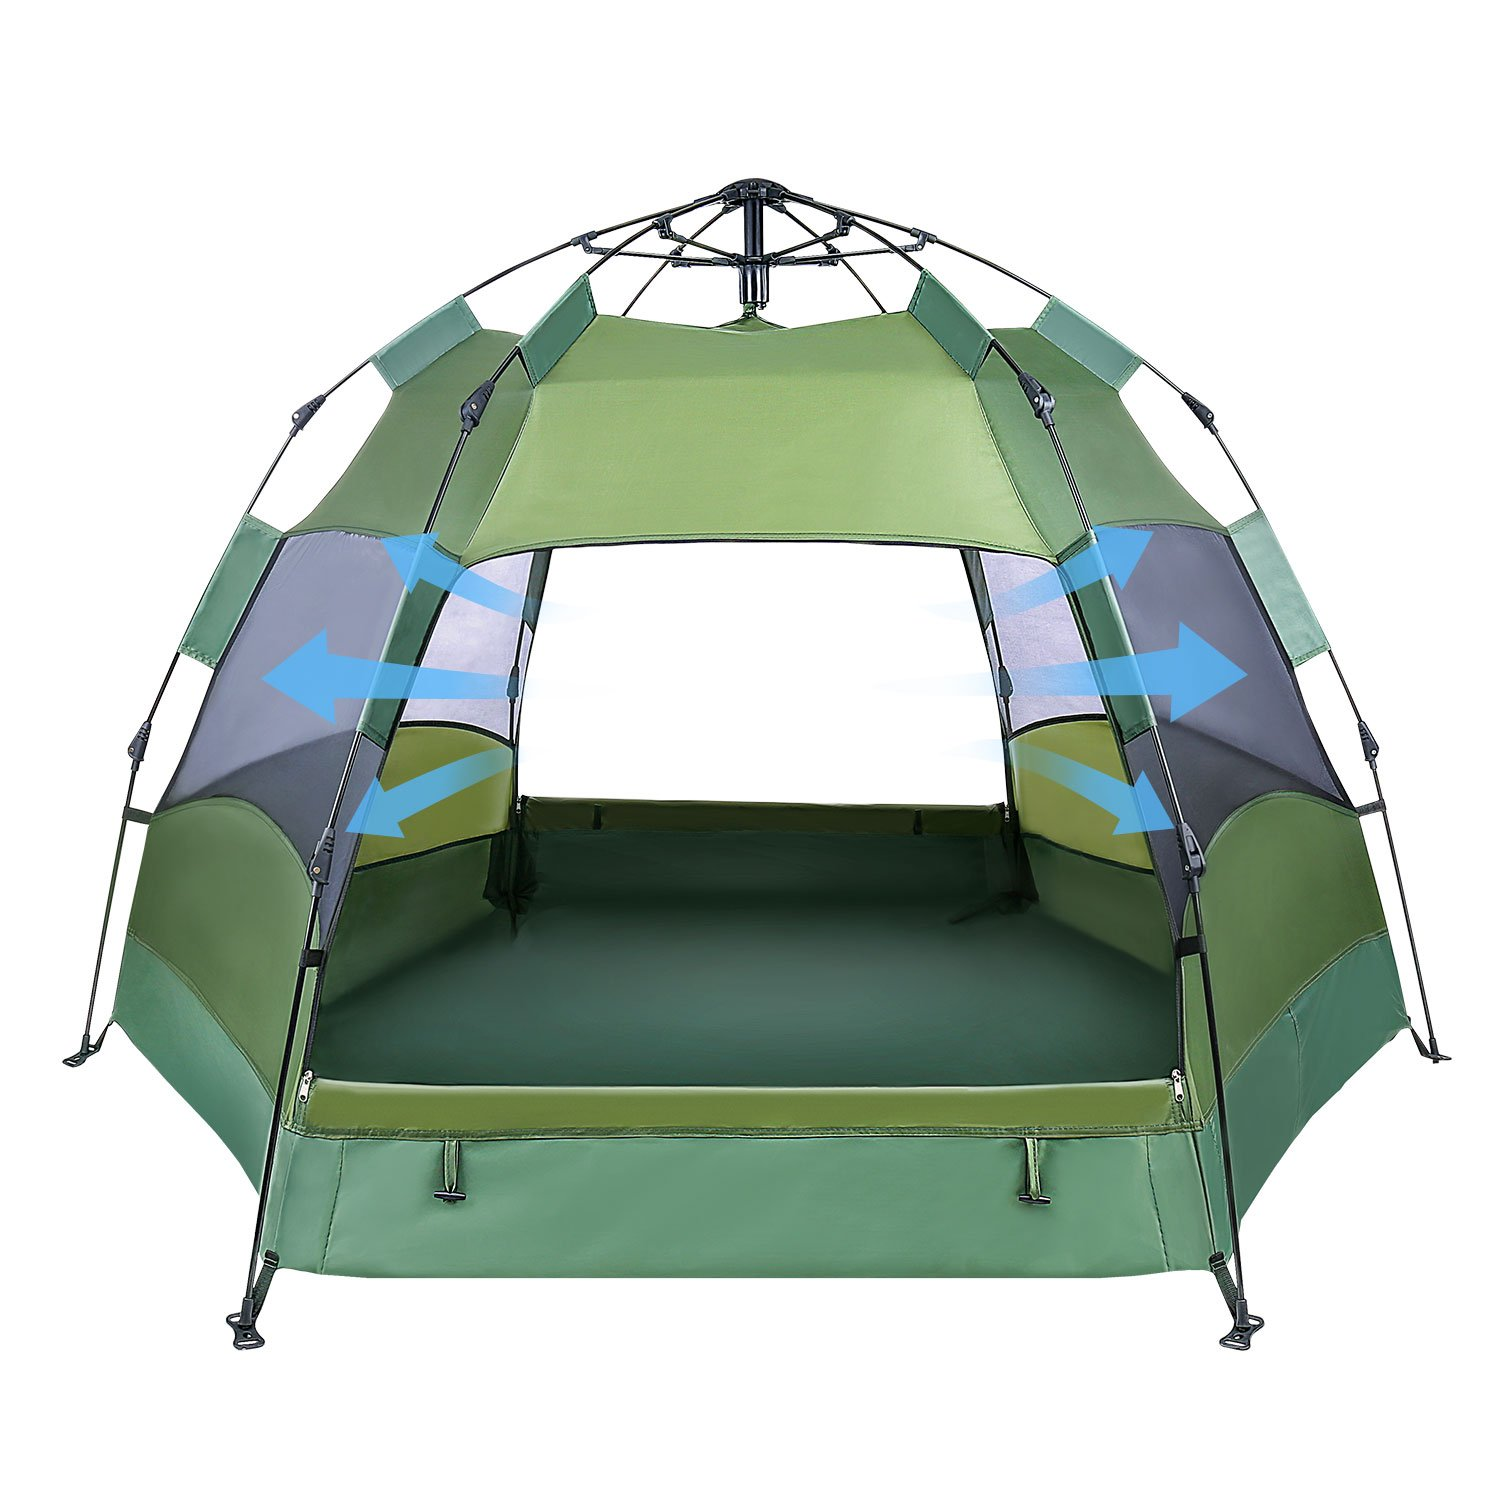 OlarHike 2-4 Person Tent for Camping